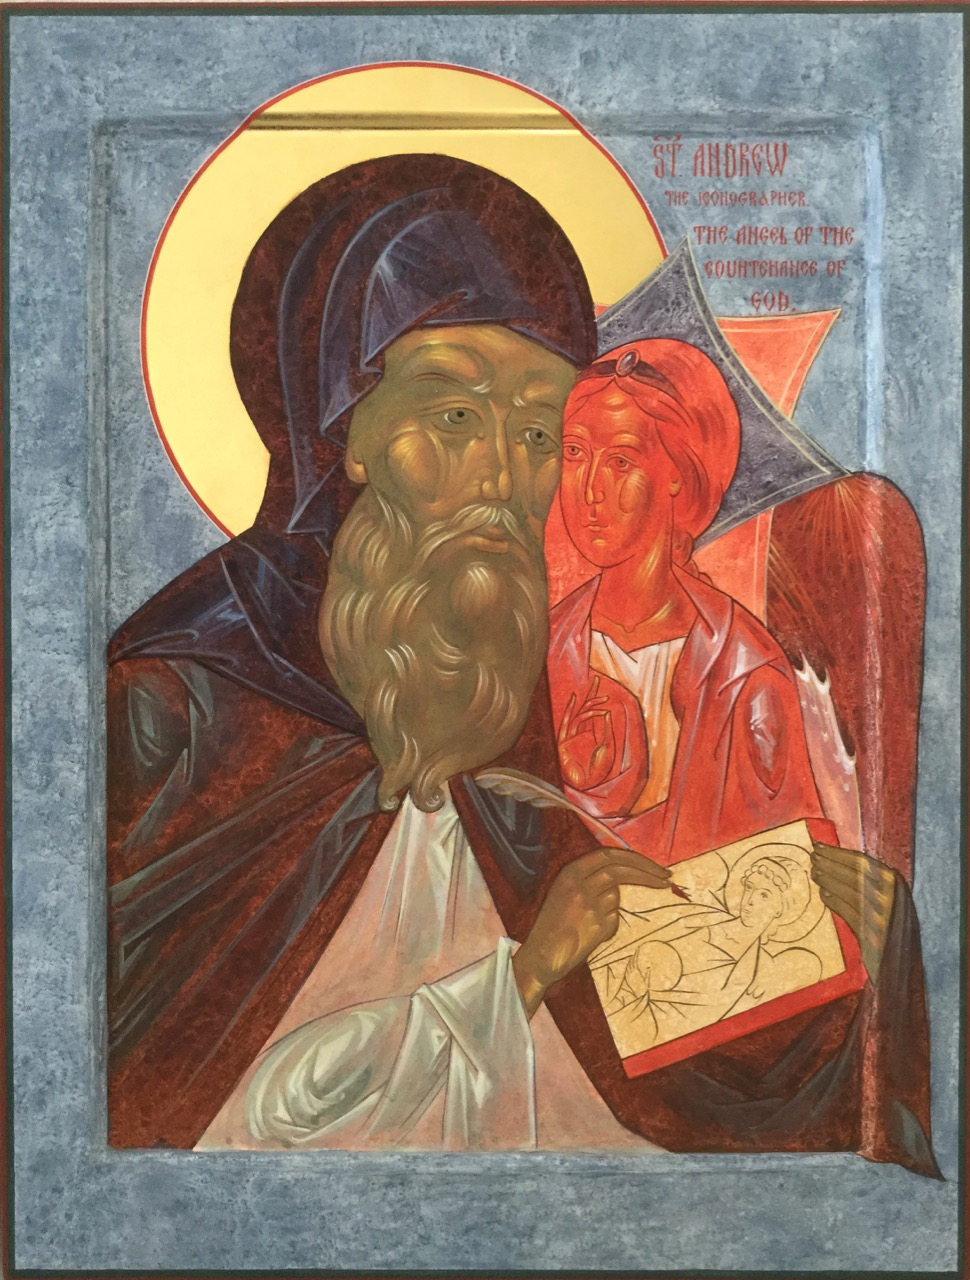 St Andrei Rublev, the Iconographer